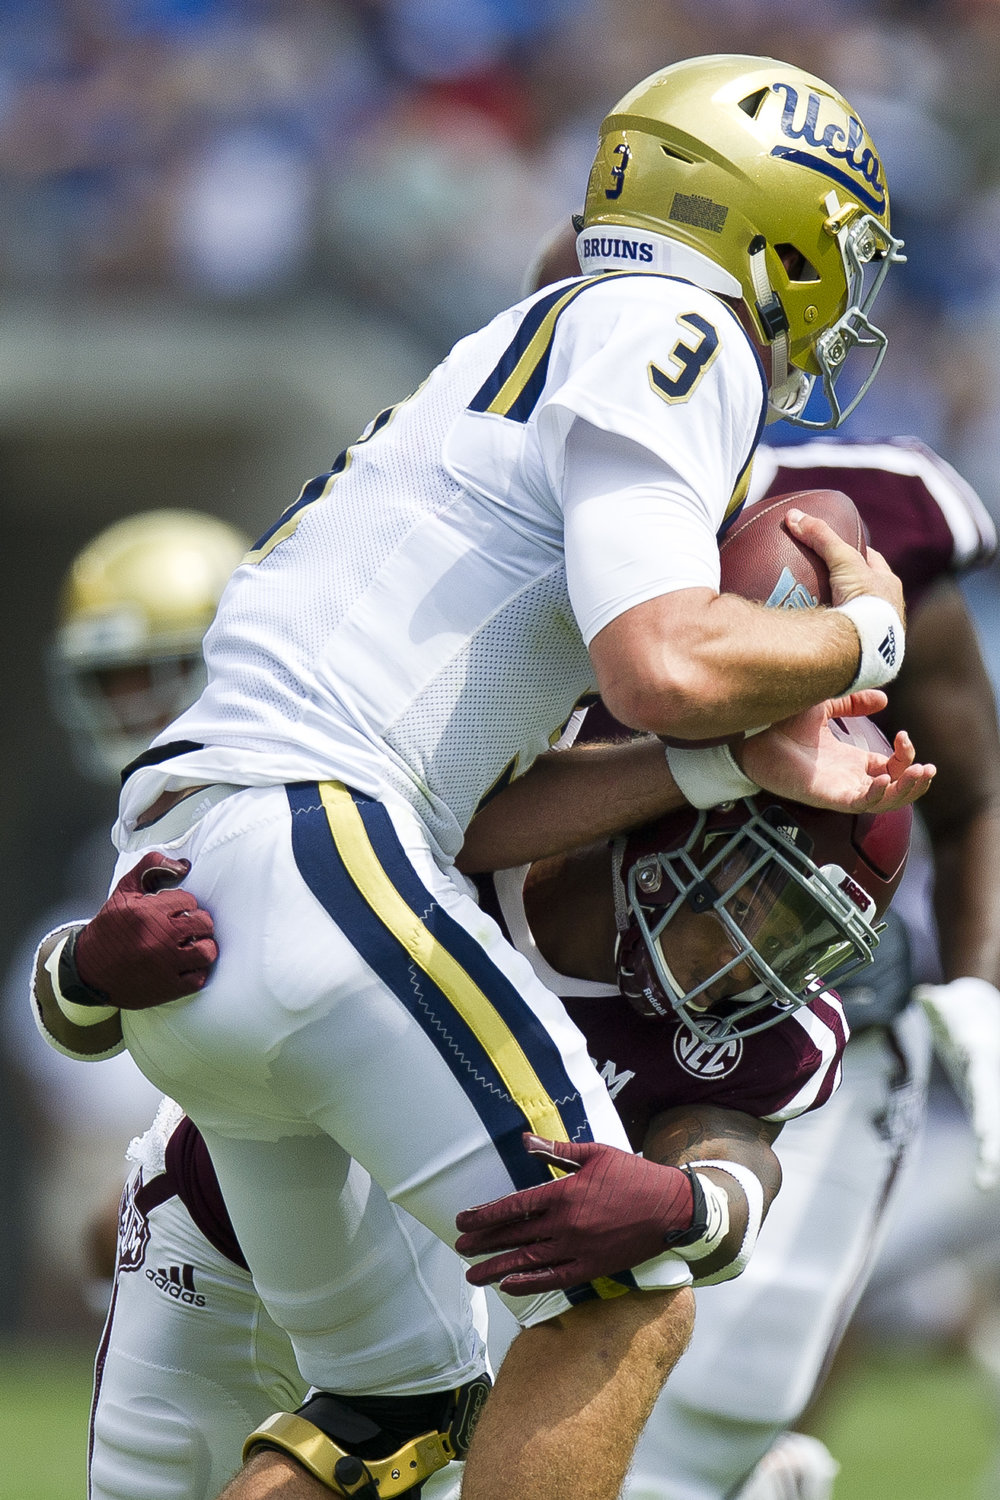 Texas A&M University defensive back Armani Watts (23) sacks UCLA quarterback Josh Rosen (3) during Texas A&M University's season opening home game against the UCLA, Saturday, Sept. 3, 2016, at Kyle Field in College Station, Texas.